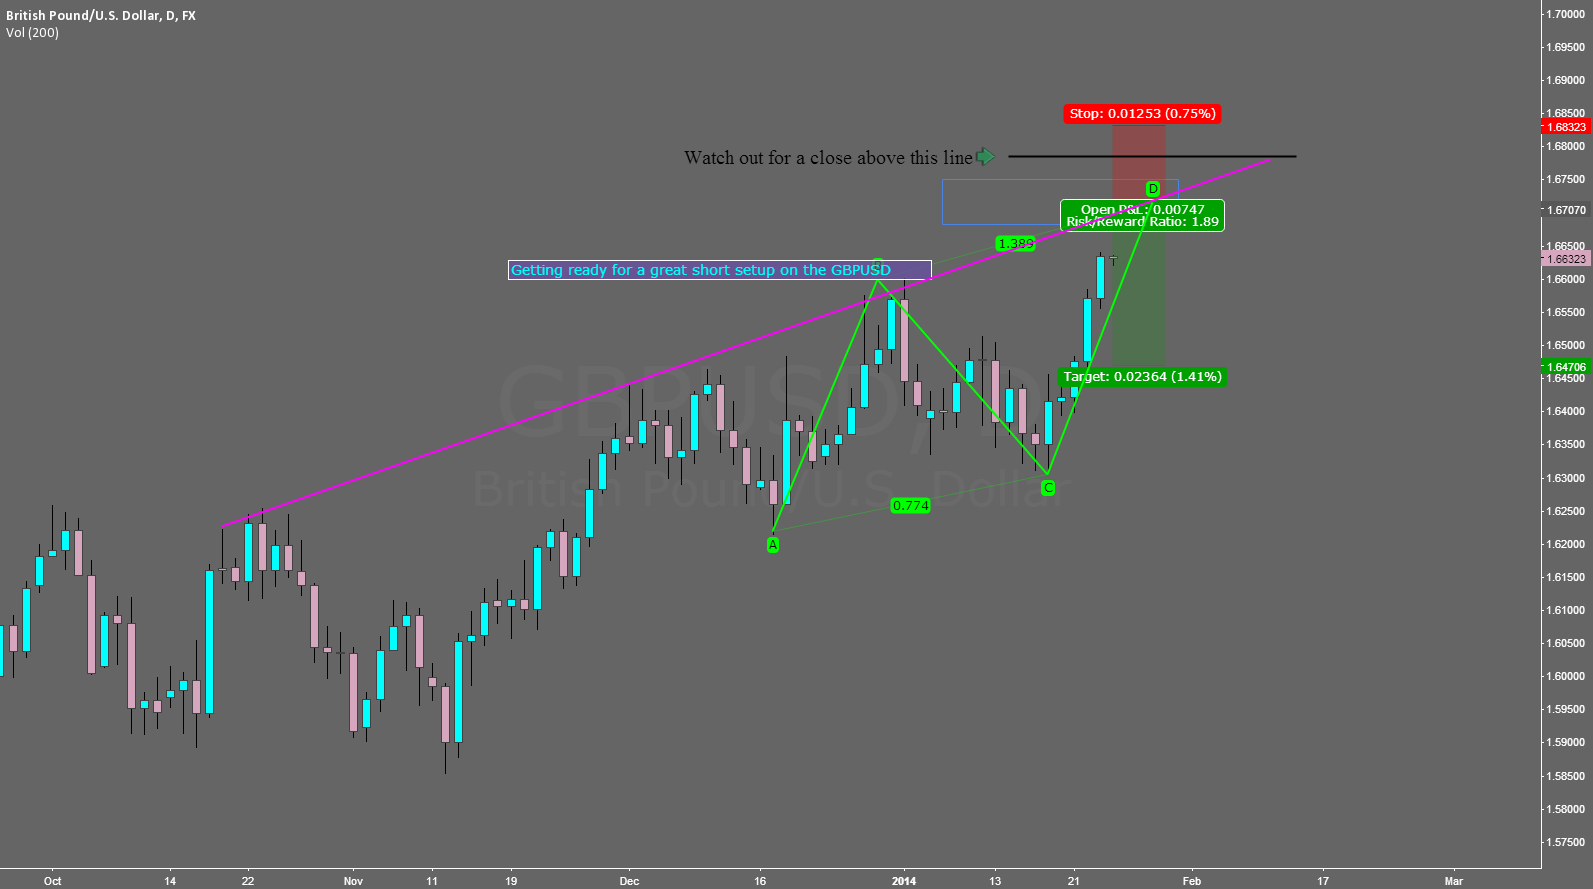 A short on the GBPUSD